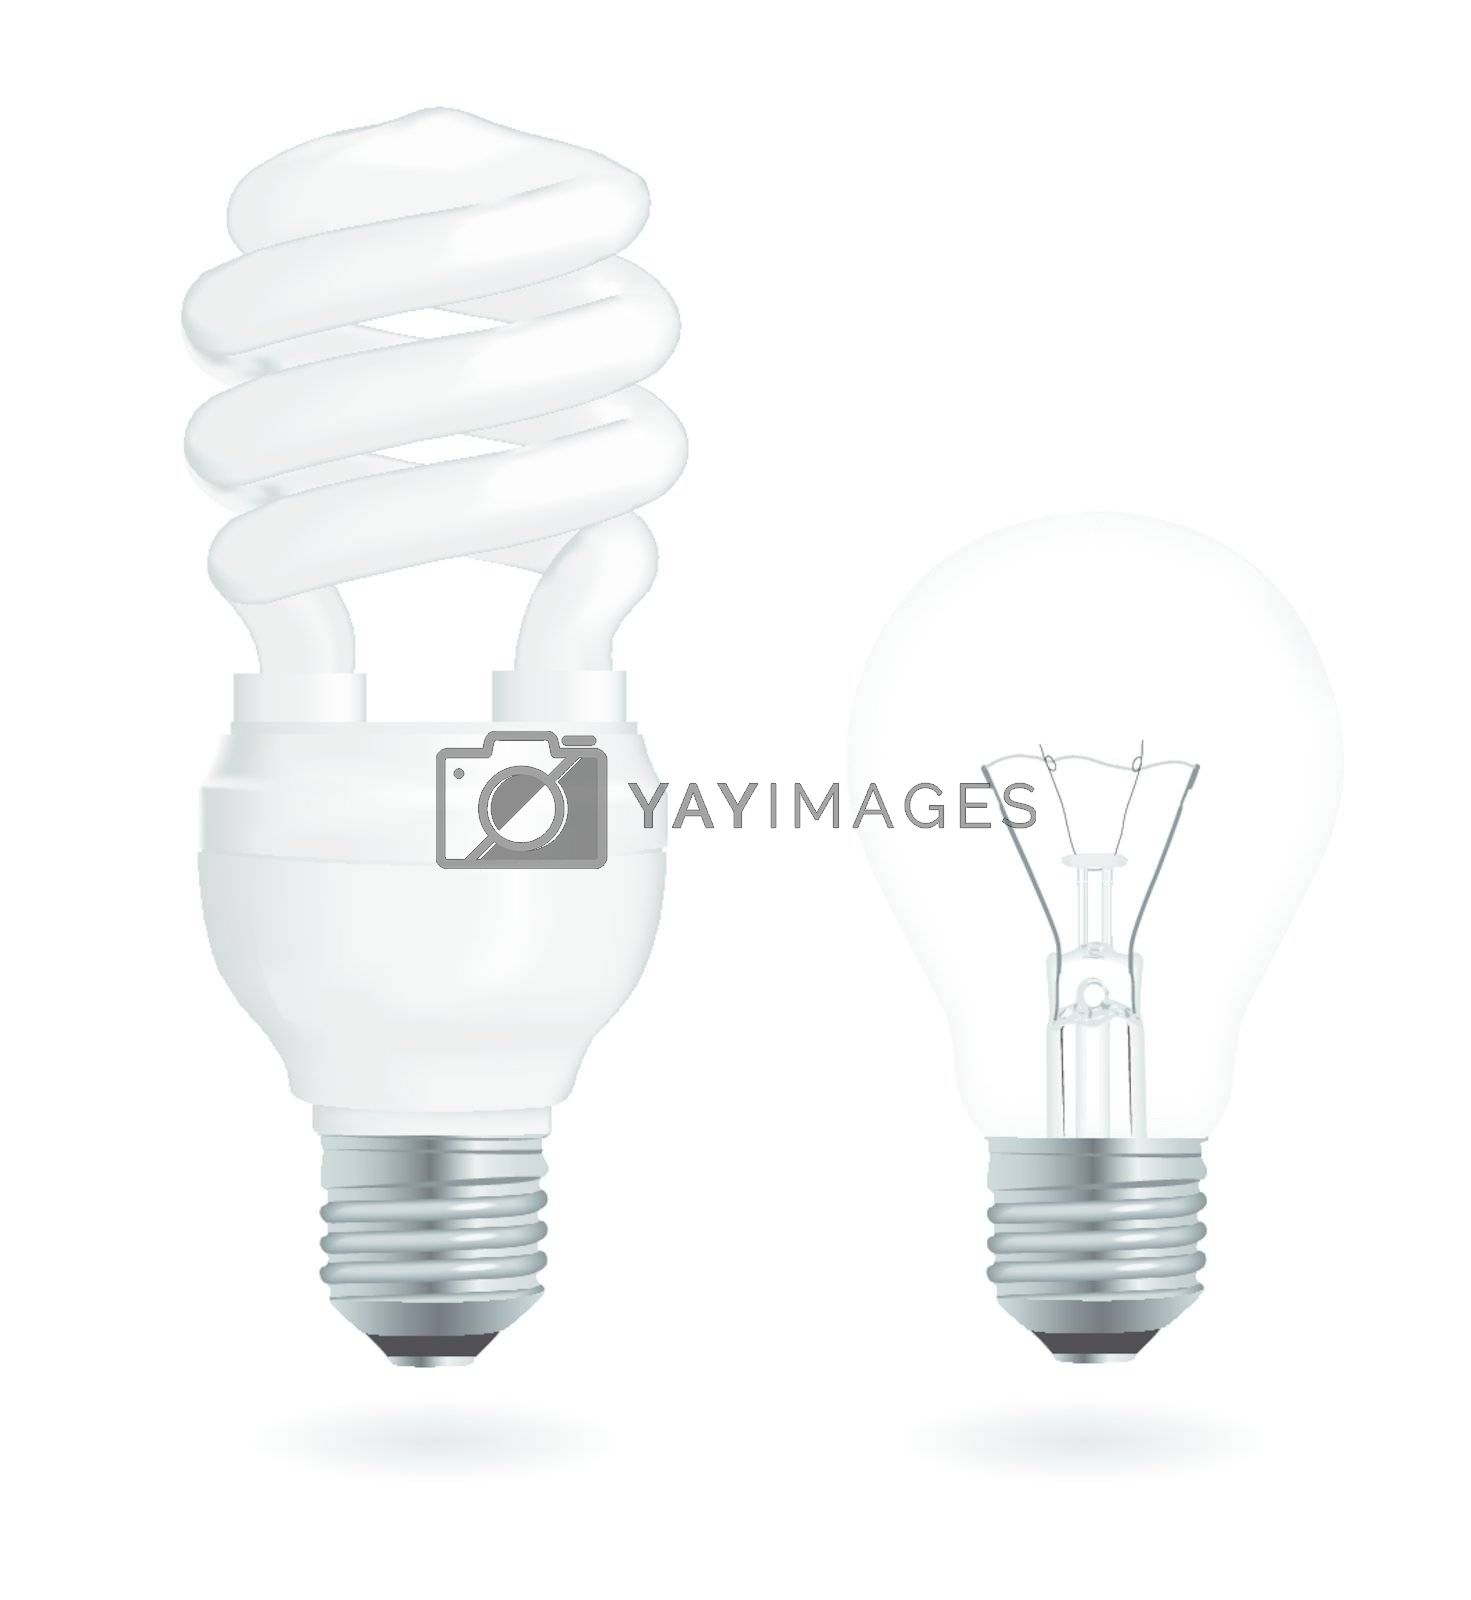 Incandescent and fluorescent energy saving light bulbs. Vector Illustration.